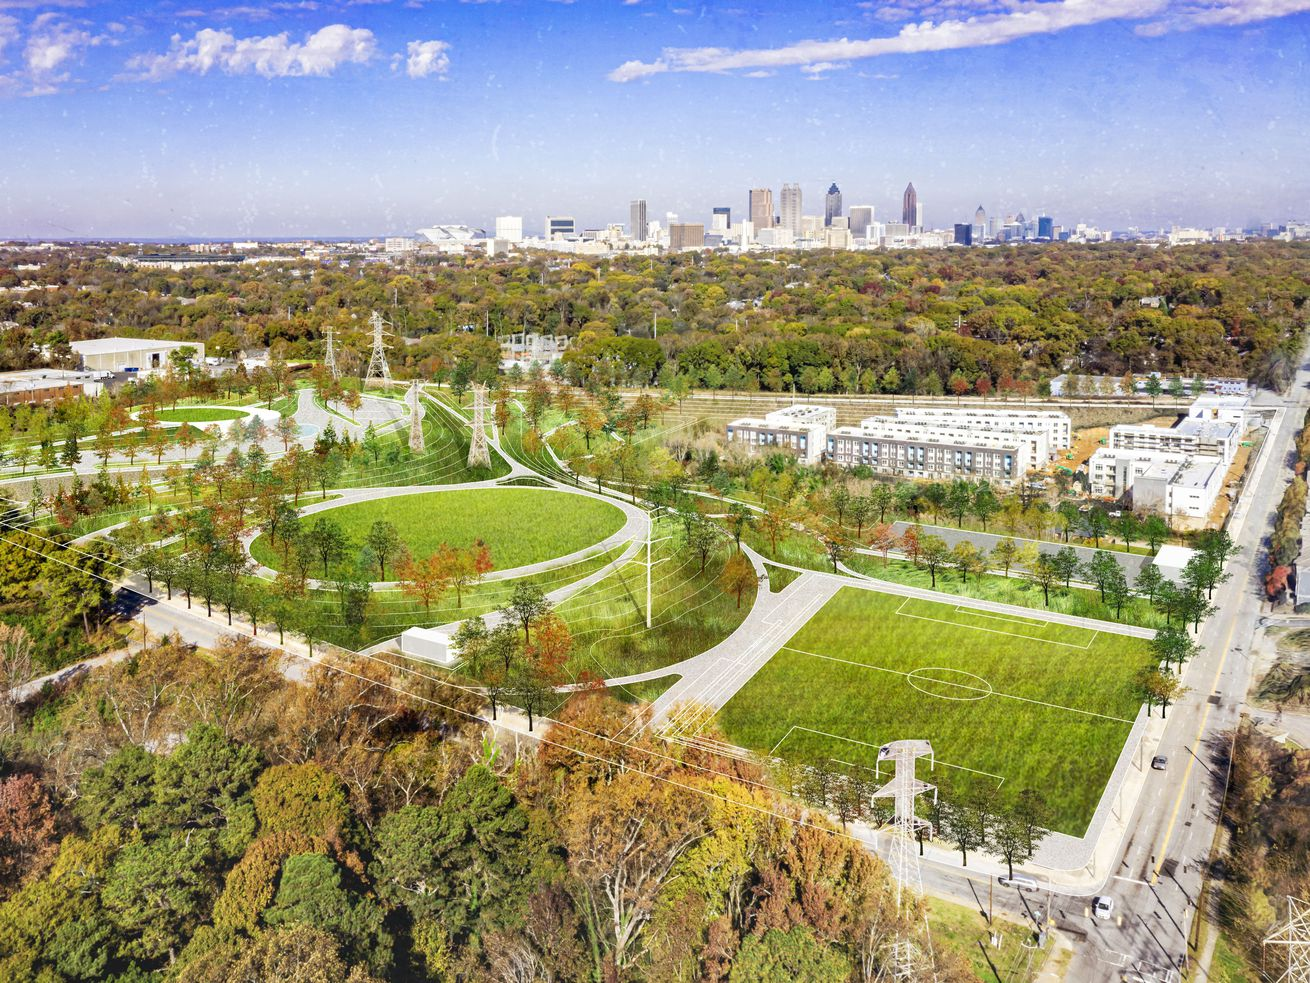 A rendering of large green spaces that would be a park expansion south of downtown Atlanta.